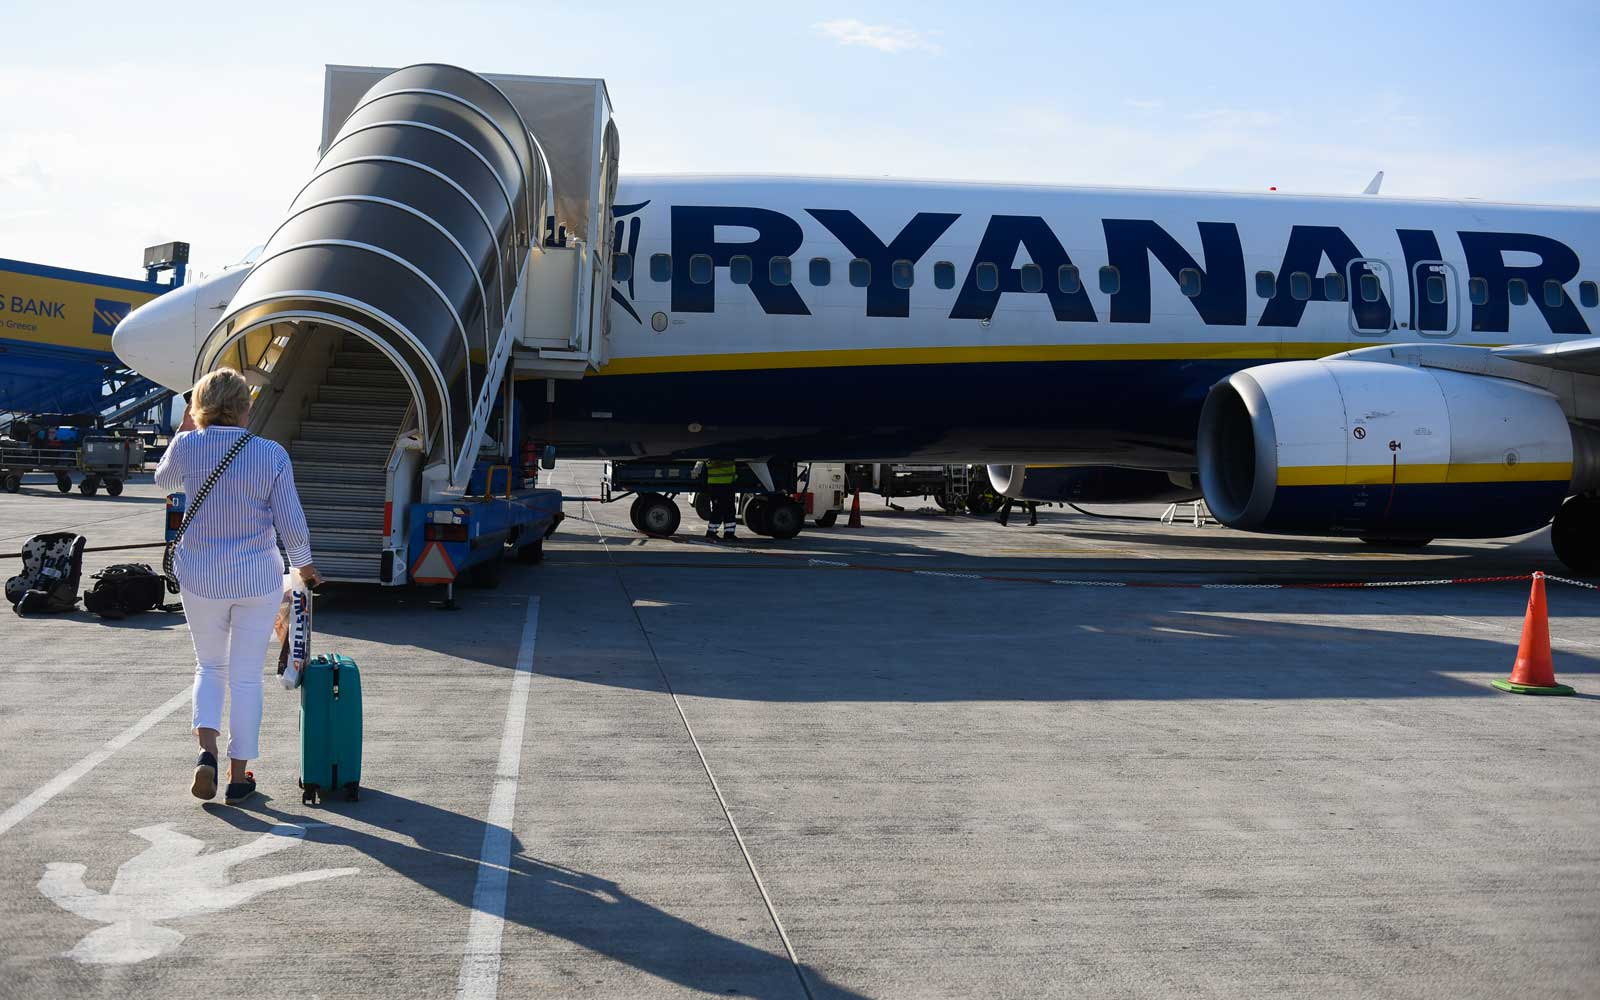 Passengers seen boarding Ryanair aircraft Boeing 737-800 at Krakow John Paul II International Airport.